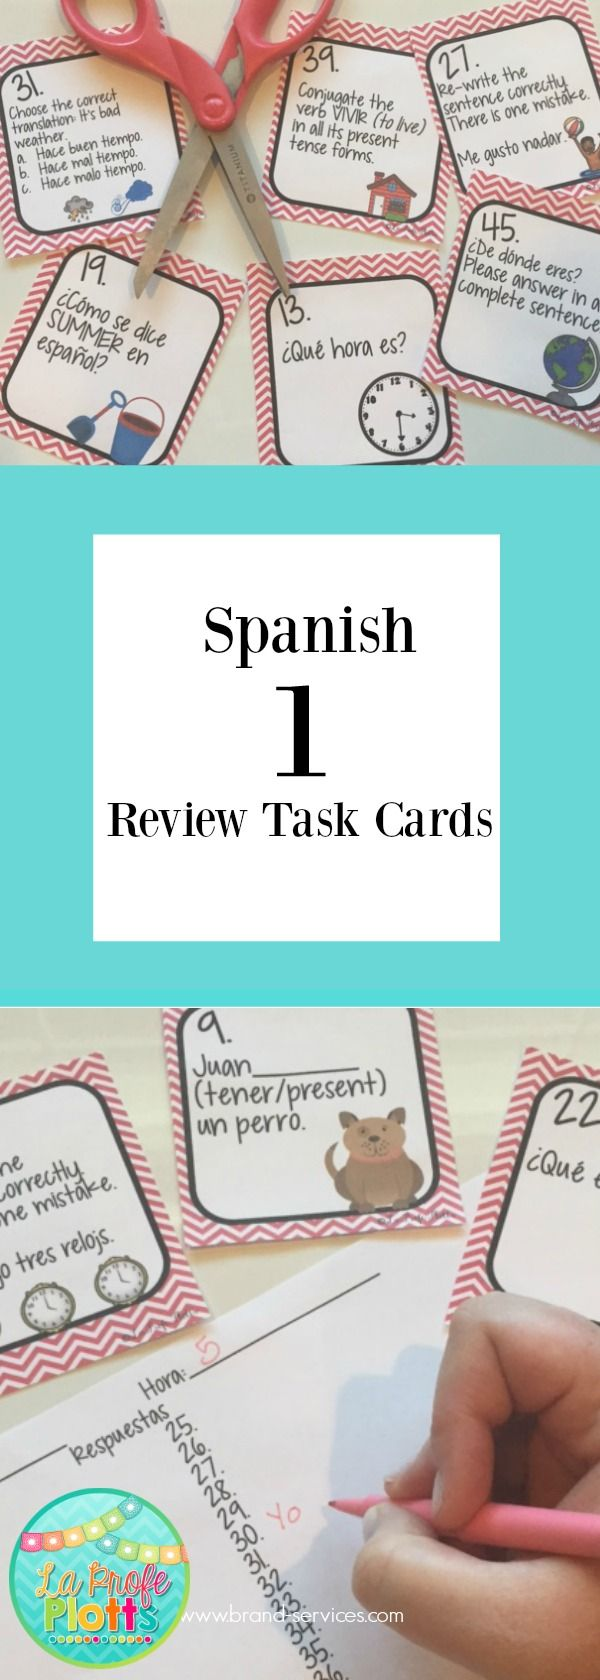 Review Spanish 1 concepts with your Spanish 2 students at the beginning of the year or go over everything with your Spanish 1 students at the end of the year before they head off for summer with this fun set of task cards!